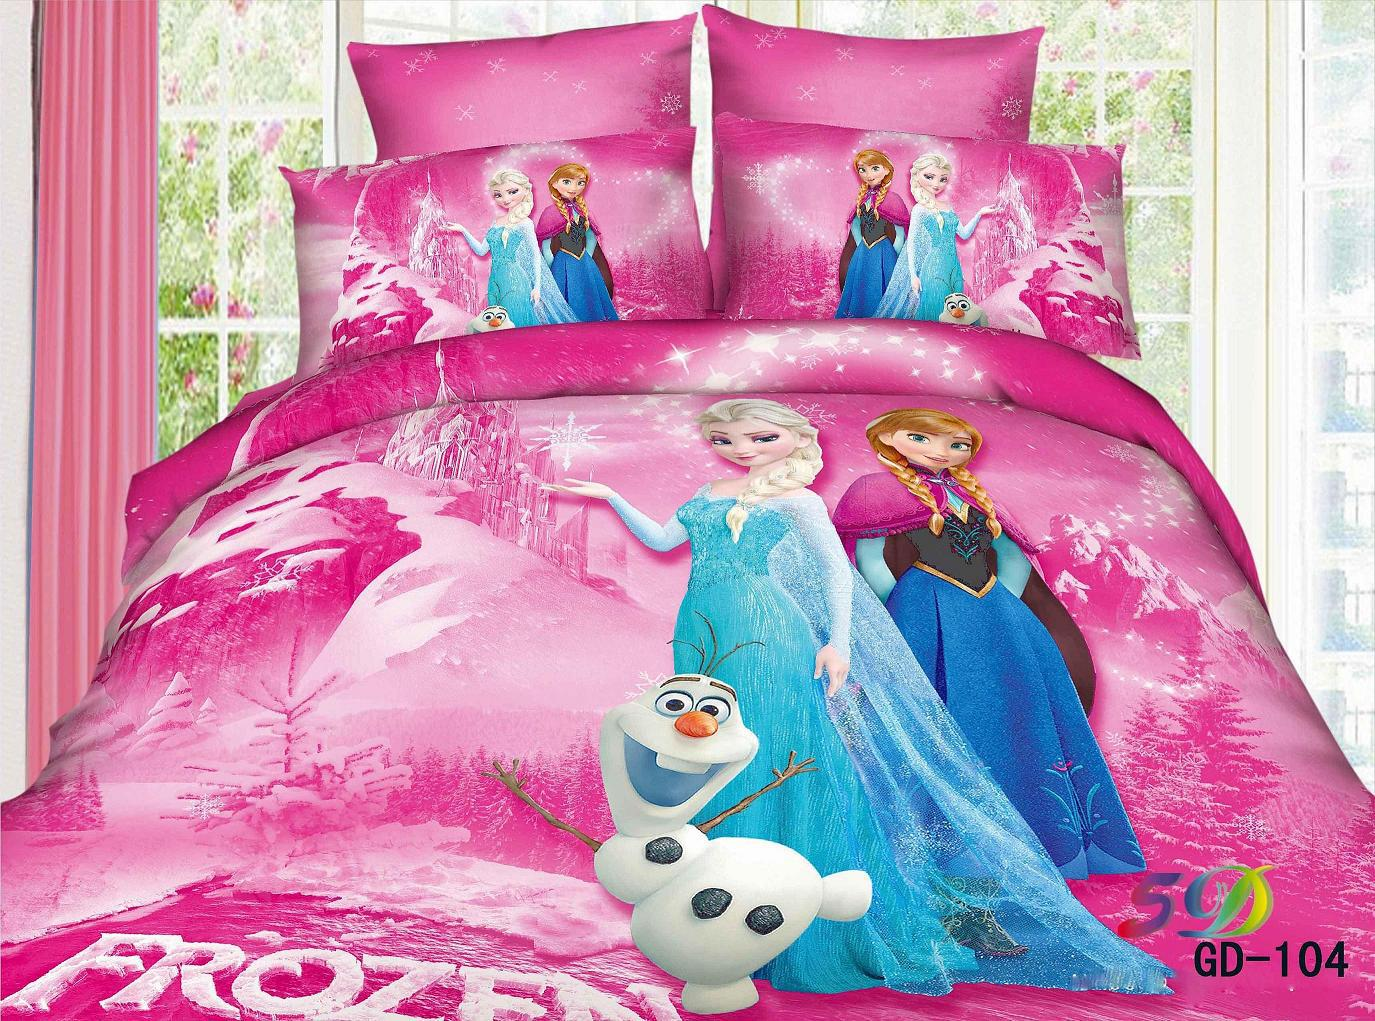 3d frozen anna elsa snowman bedding sets queen king size 100 cotton fabric quilt duvet cover. Black Bedroom Furniture Sets. Home Design Ideas